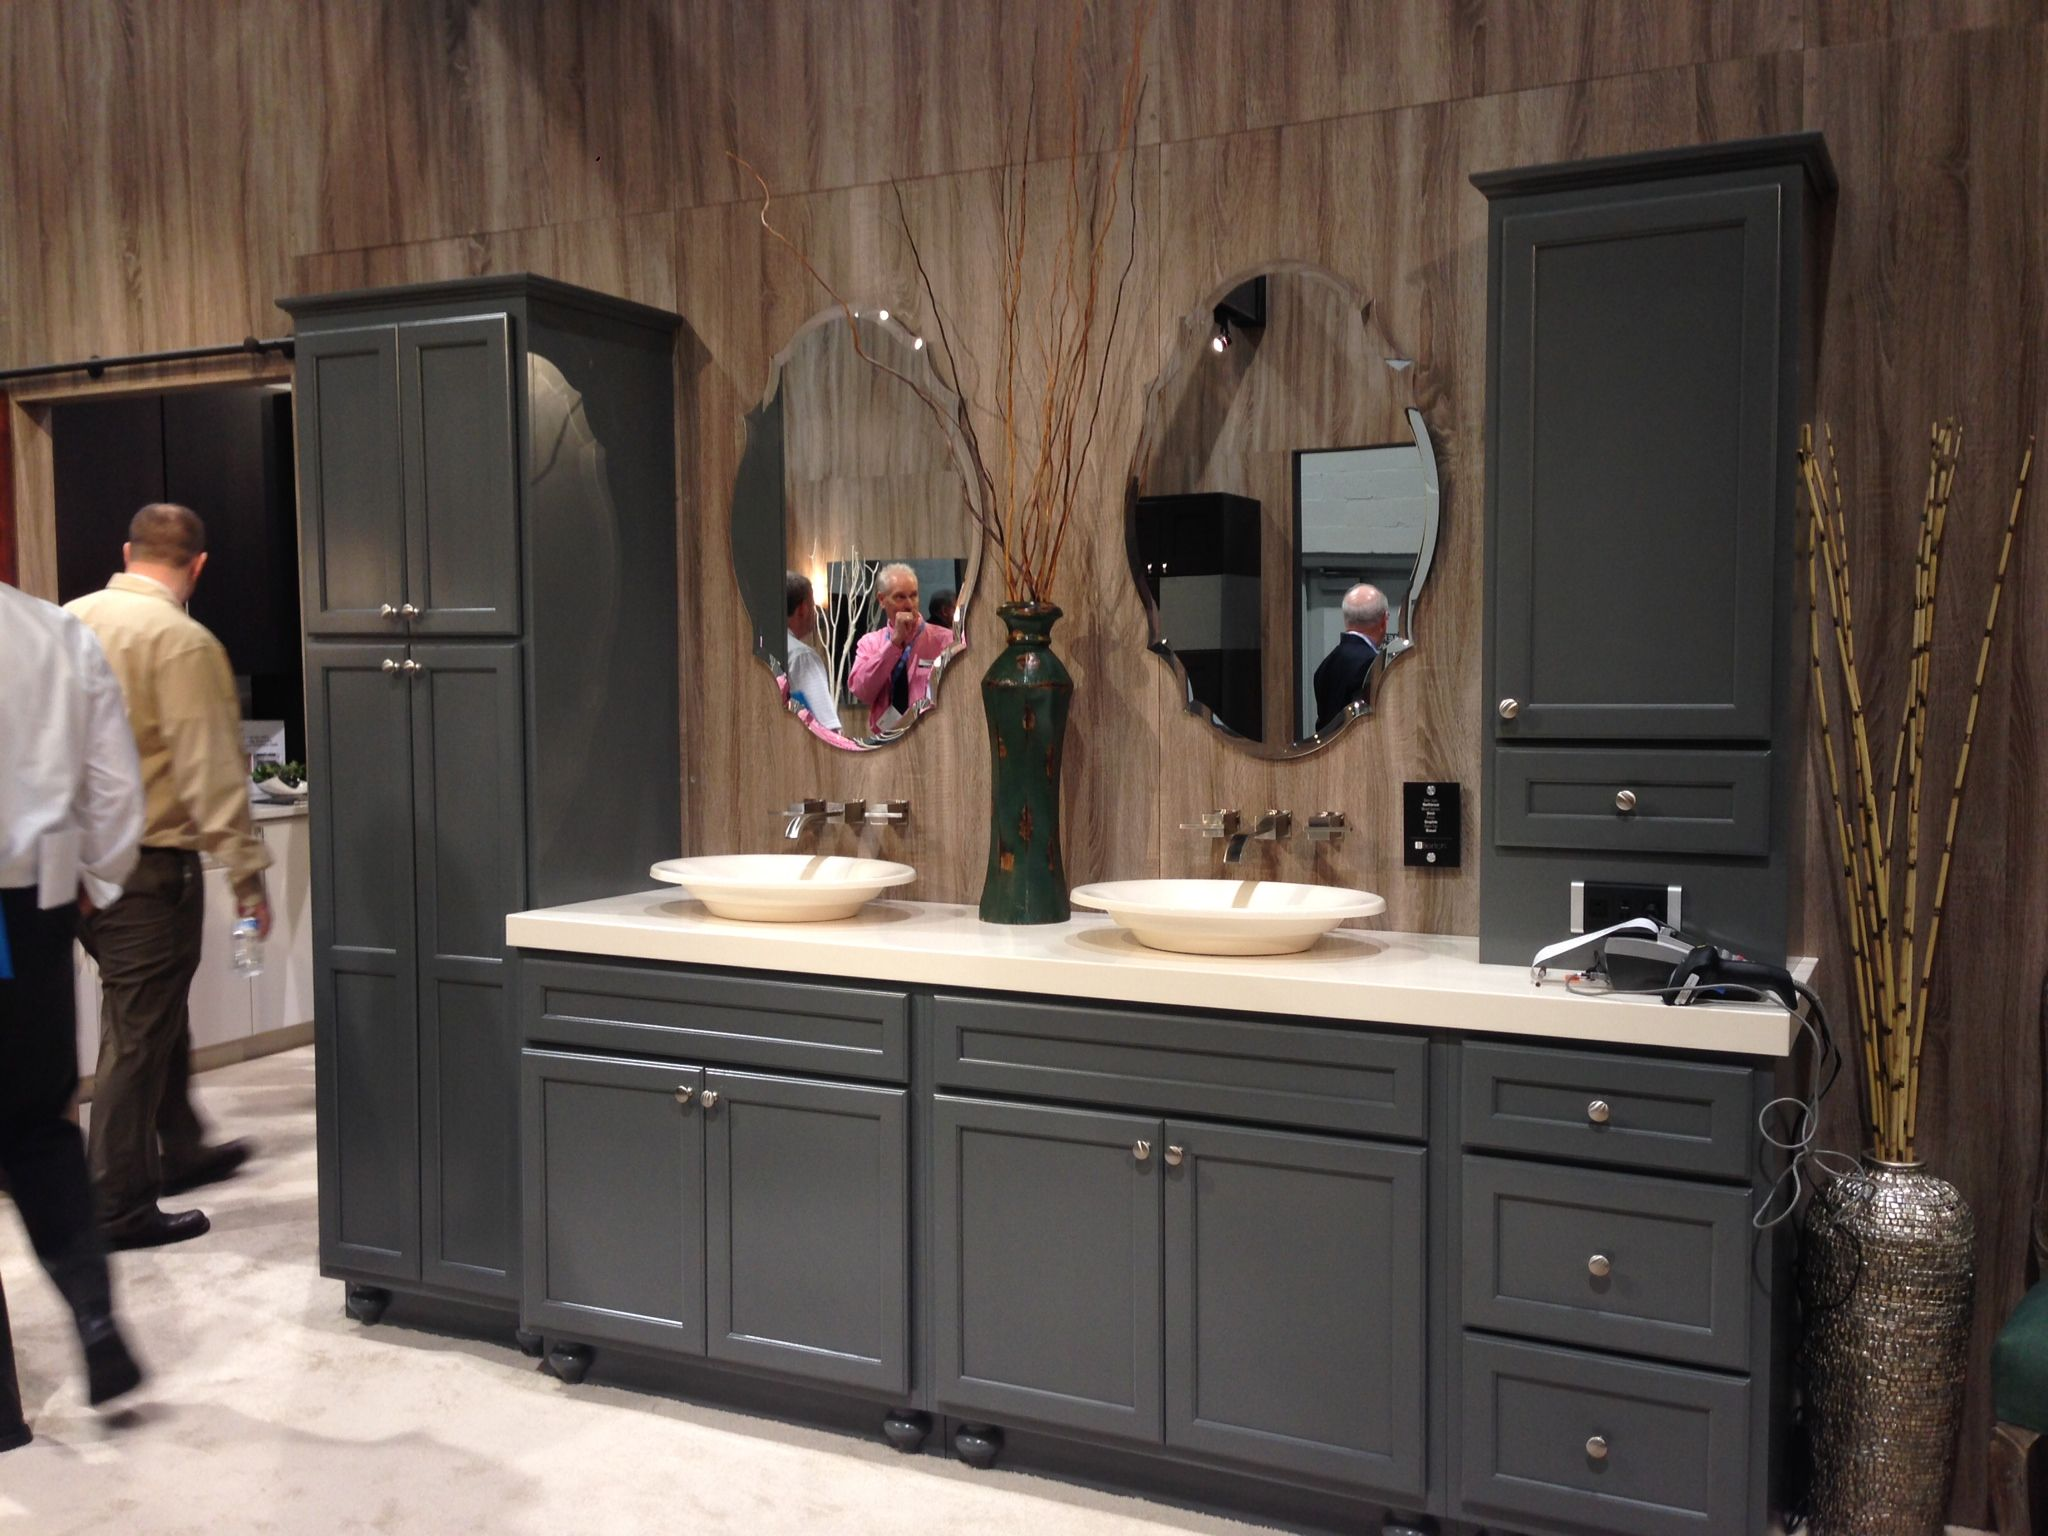 cabinet vanity on allstarmi best by pinterest images manufacturing cabinetry bathrooms pistachio madison vanities bertch bathroom dream cabinets